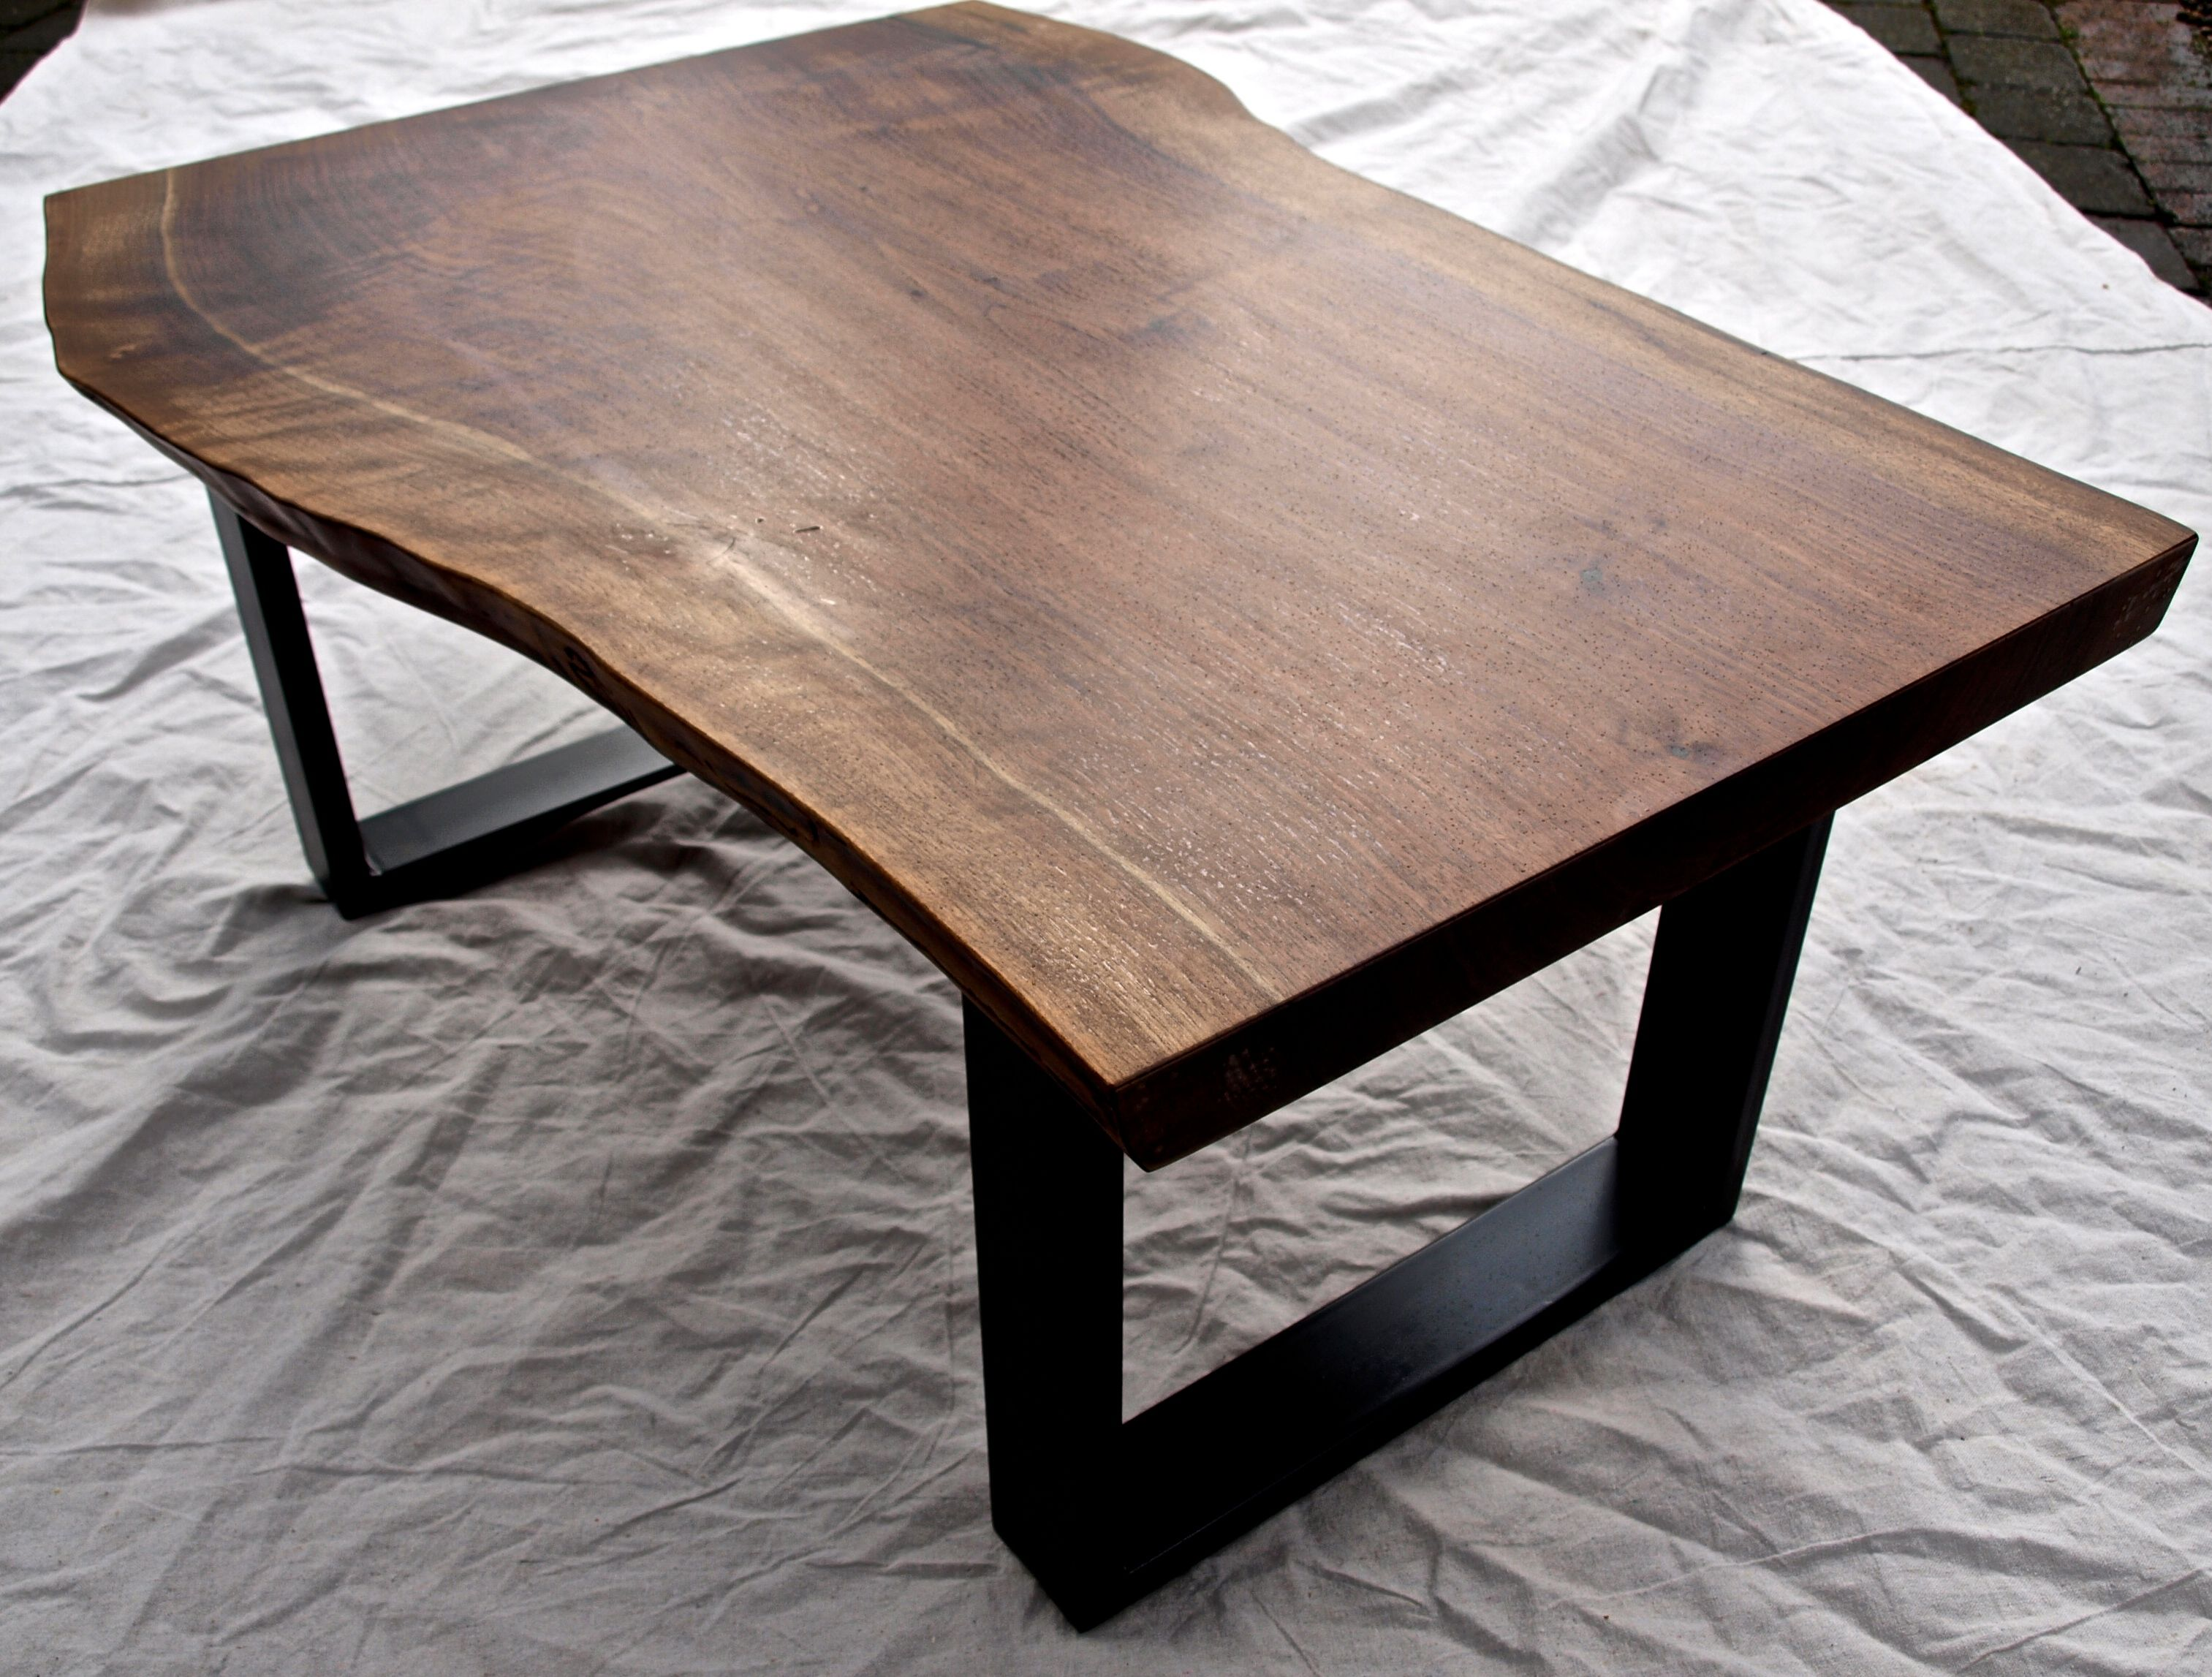 Live Edge Coffee Table Buy A Hand Crafted Live Edge Walnut Coffee Table Made To